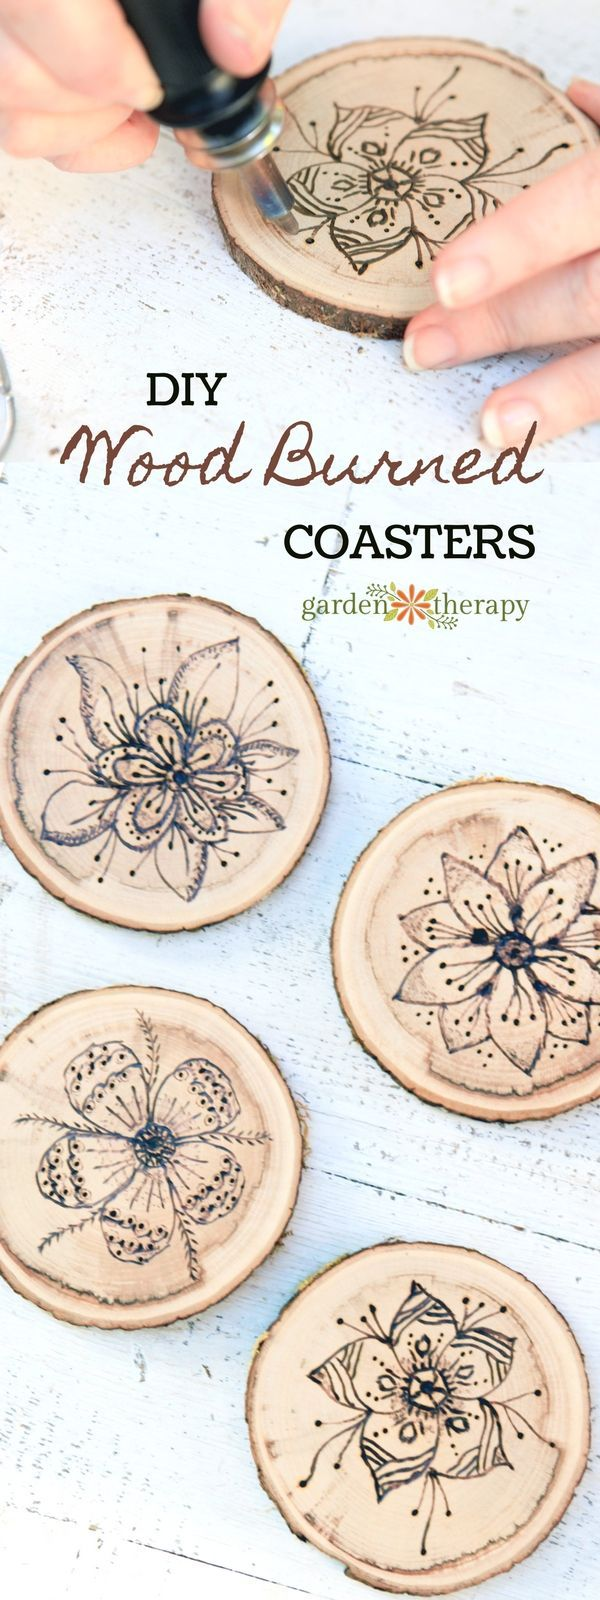 Photo of Wood Burned Coasters with Floral Pyrography – Garden Therapy